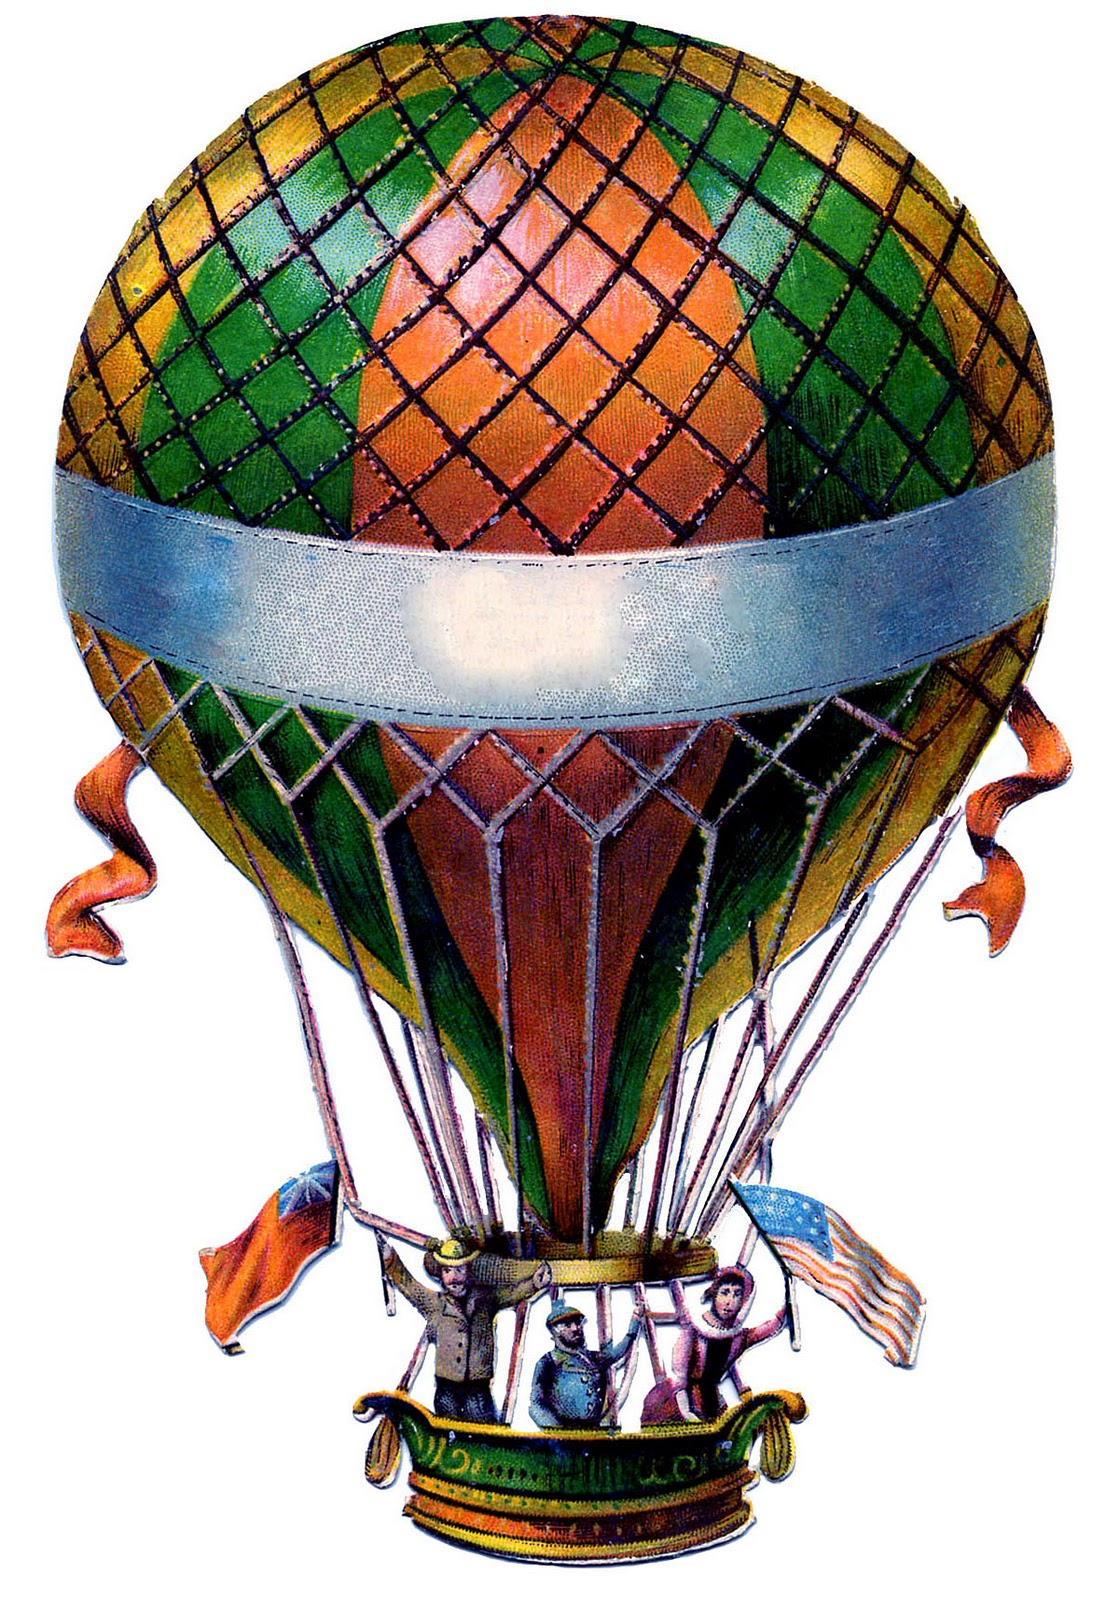 Antique Graphic - Hot Air Balloon - Steampunk - The ...